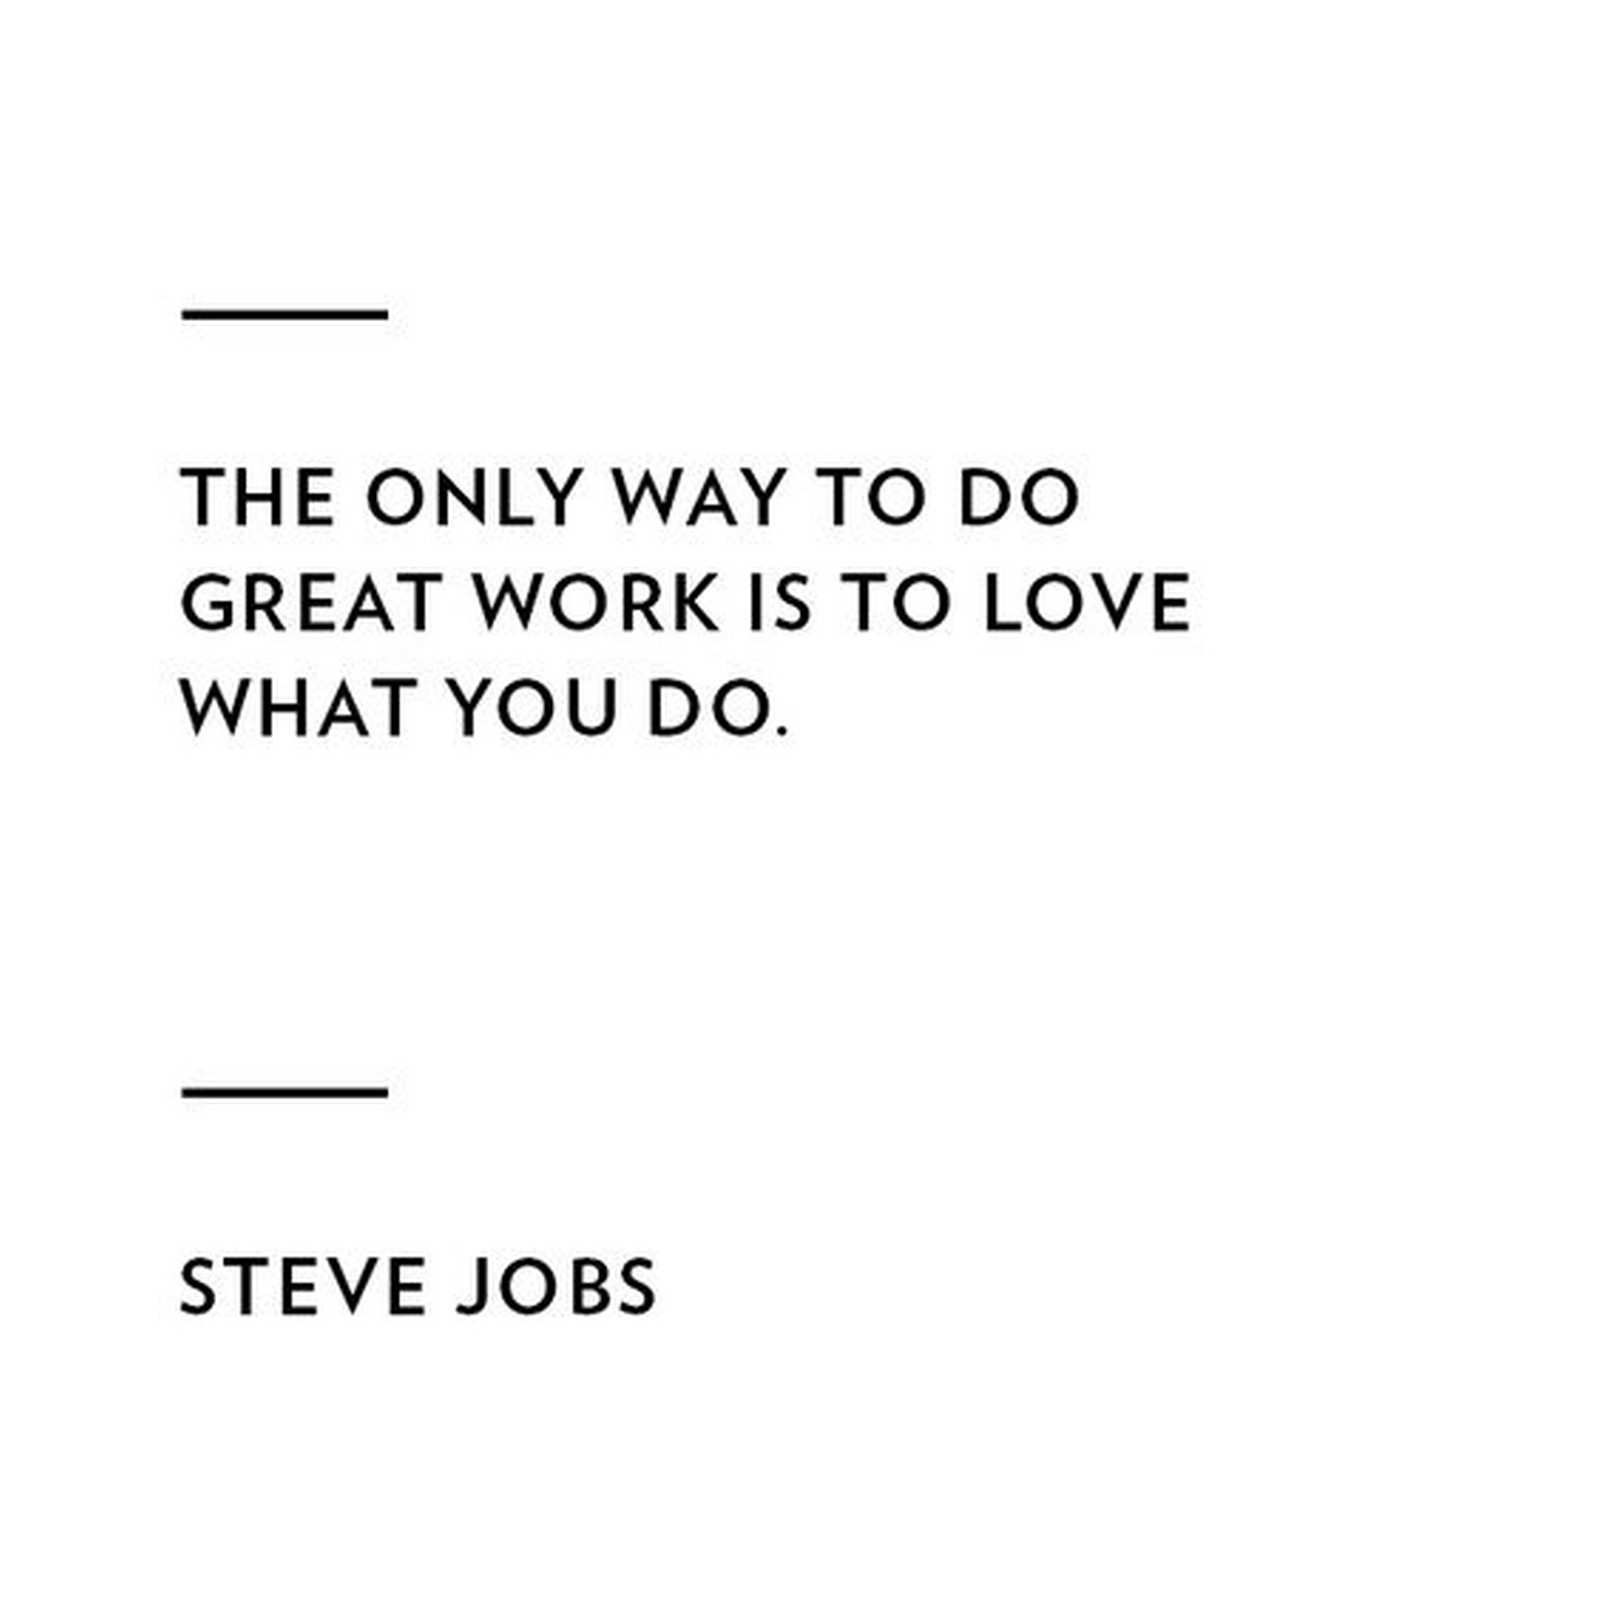 19 Steve Jobs Quotes to Inspire You To Be Your Very Best